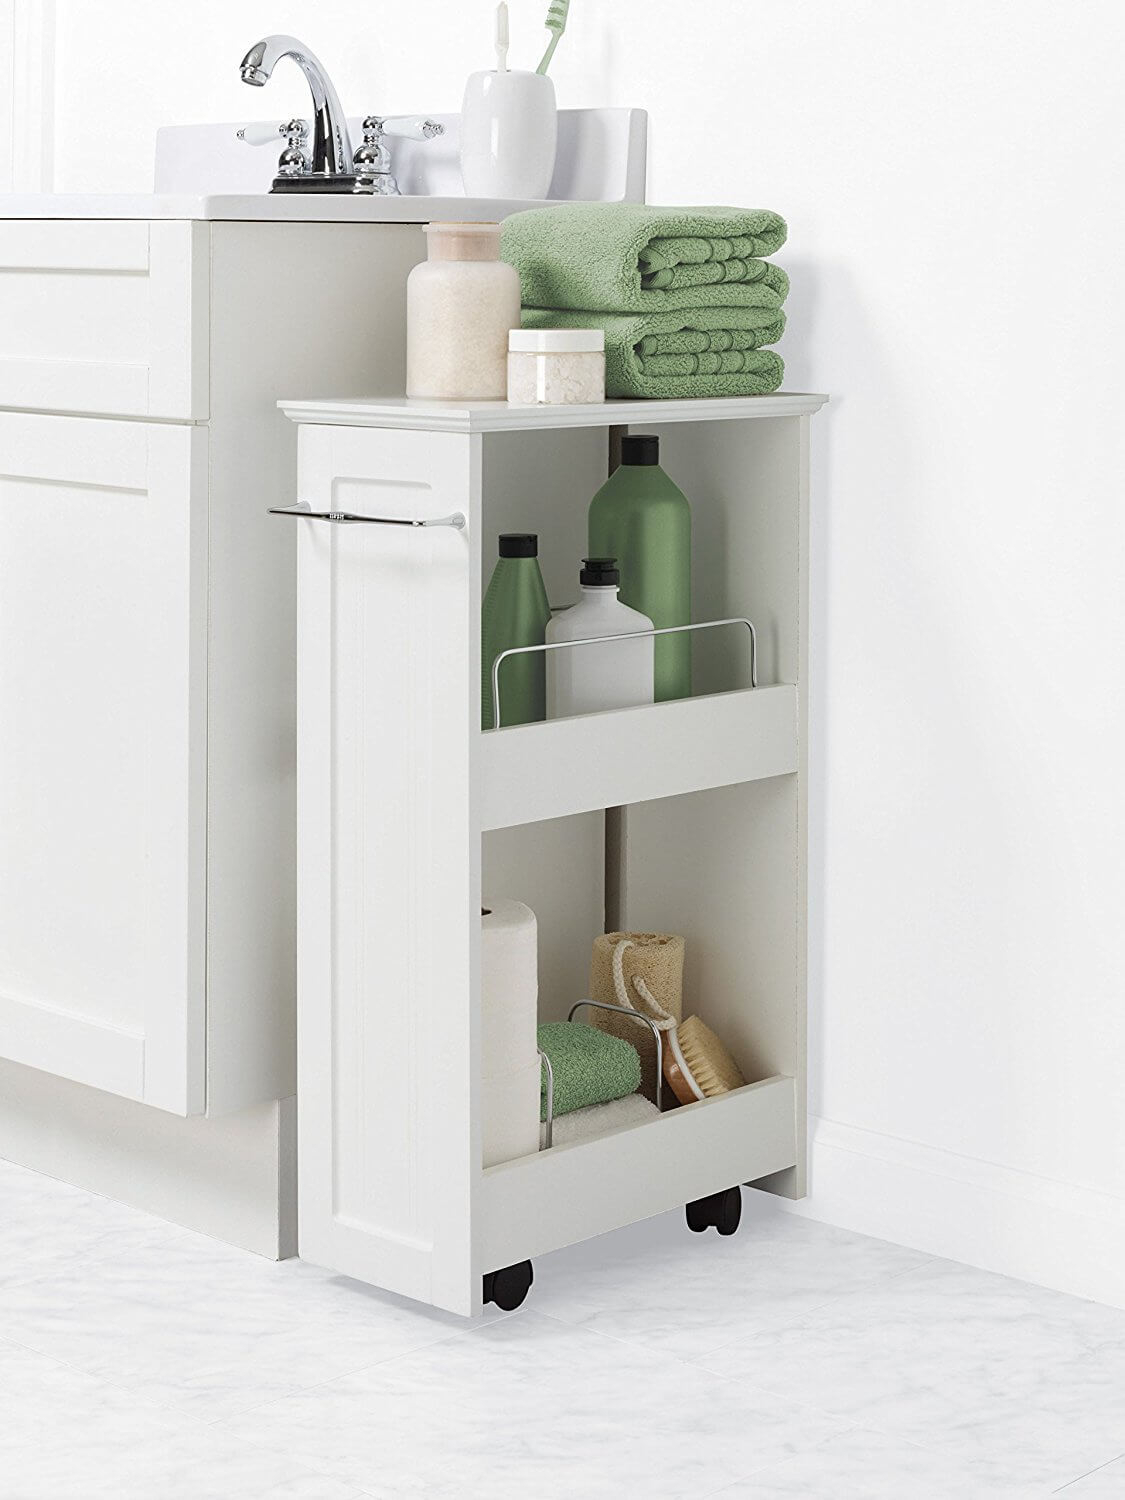 26 Best Bathroom Storage Cabinet Ideas For 2019 within dimensions 1125 X 1500